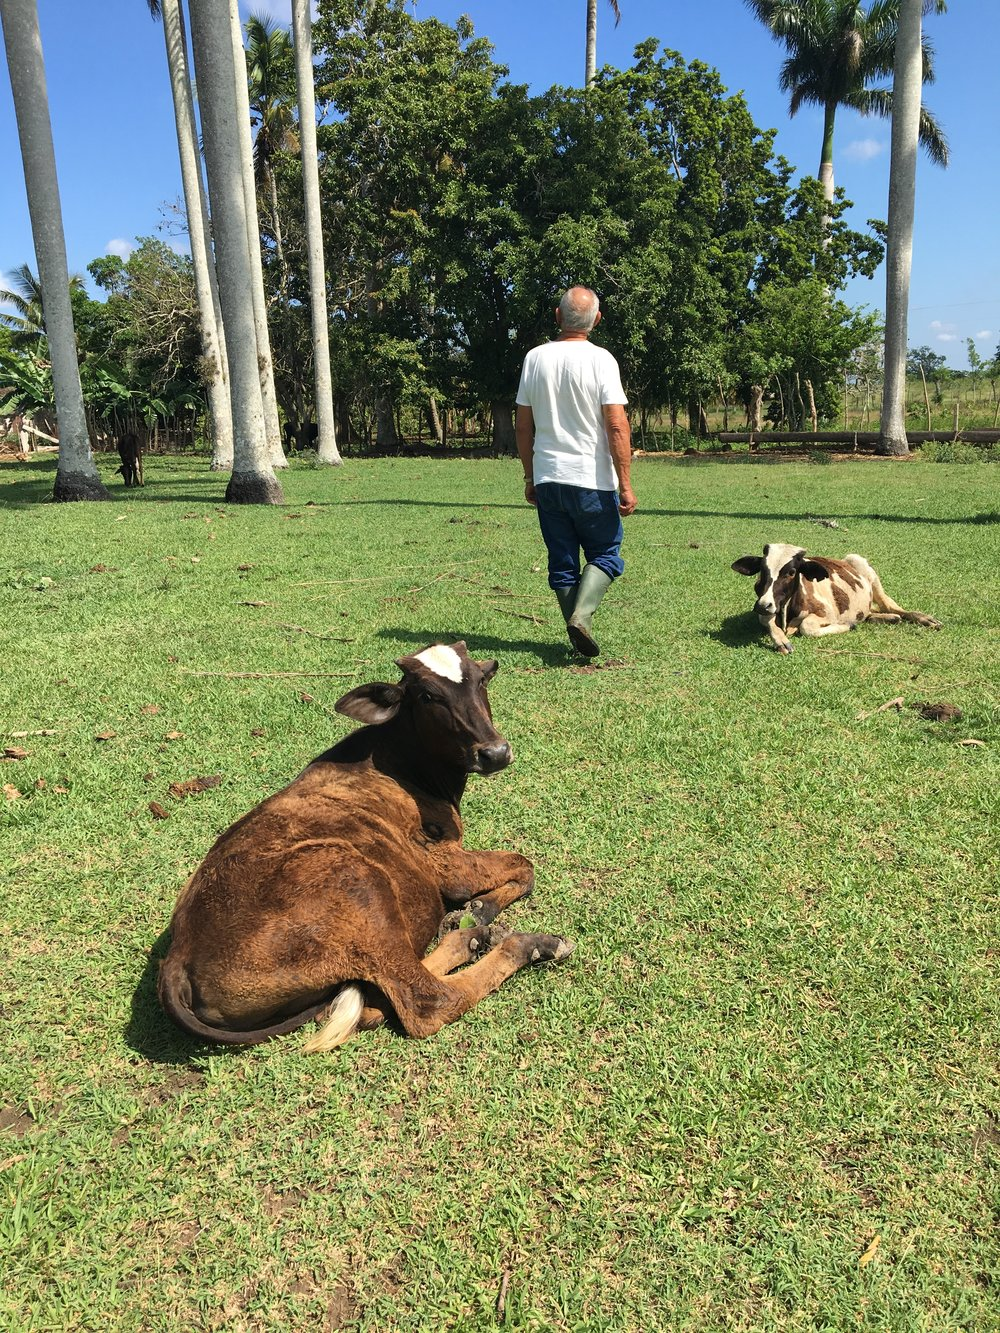 Manolo, showing me around. (And don't the cows look content?!)